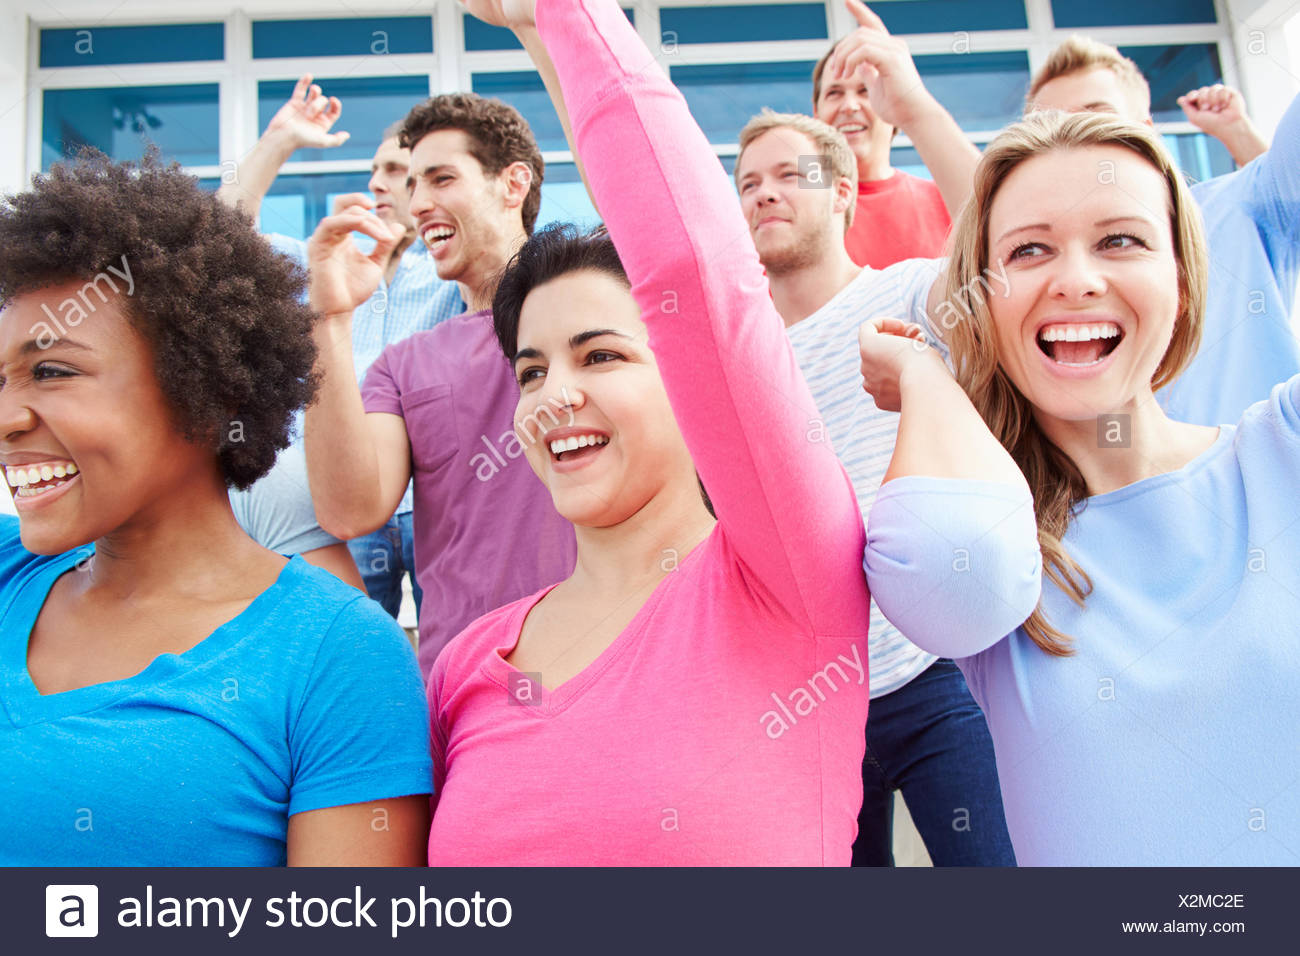 Audience Dancing At Outdoor Concert Performance - Stock Image